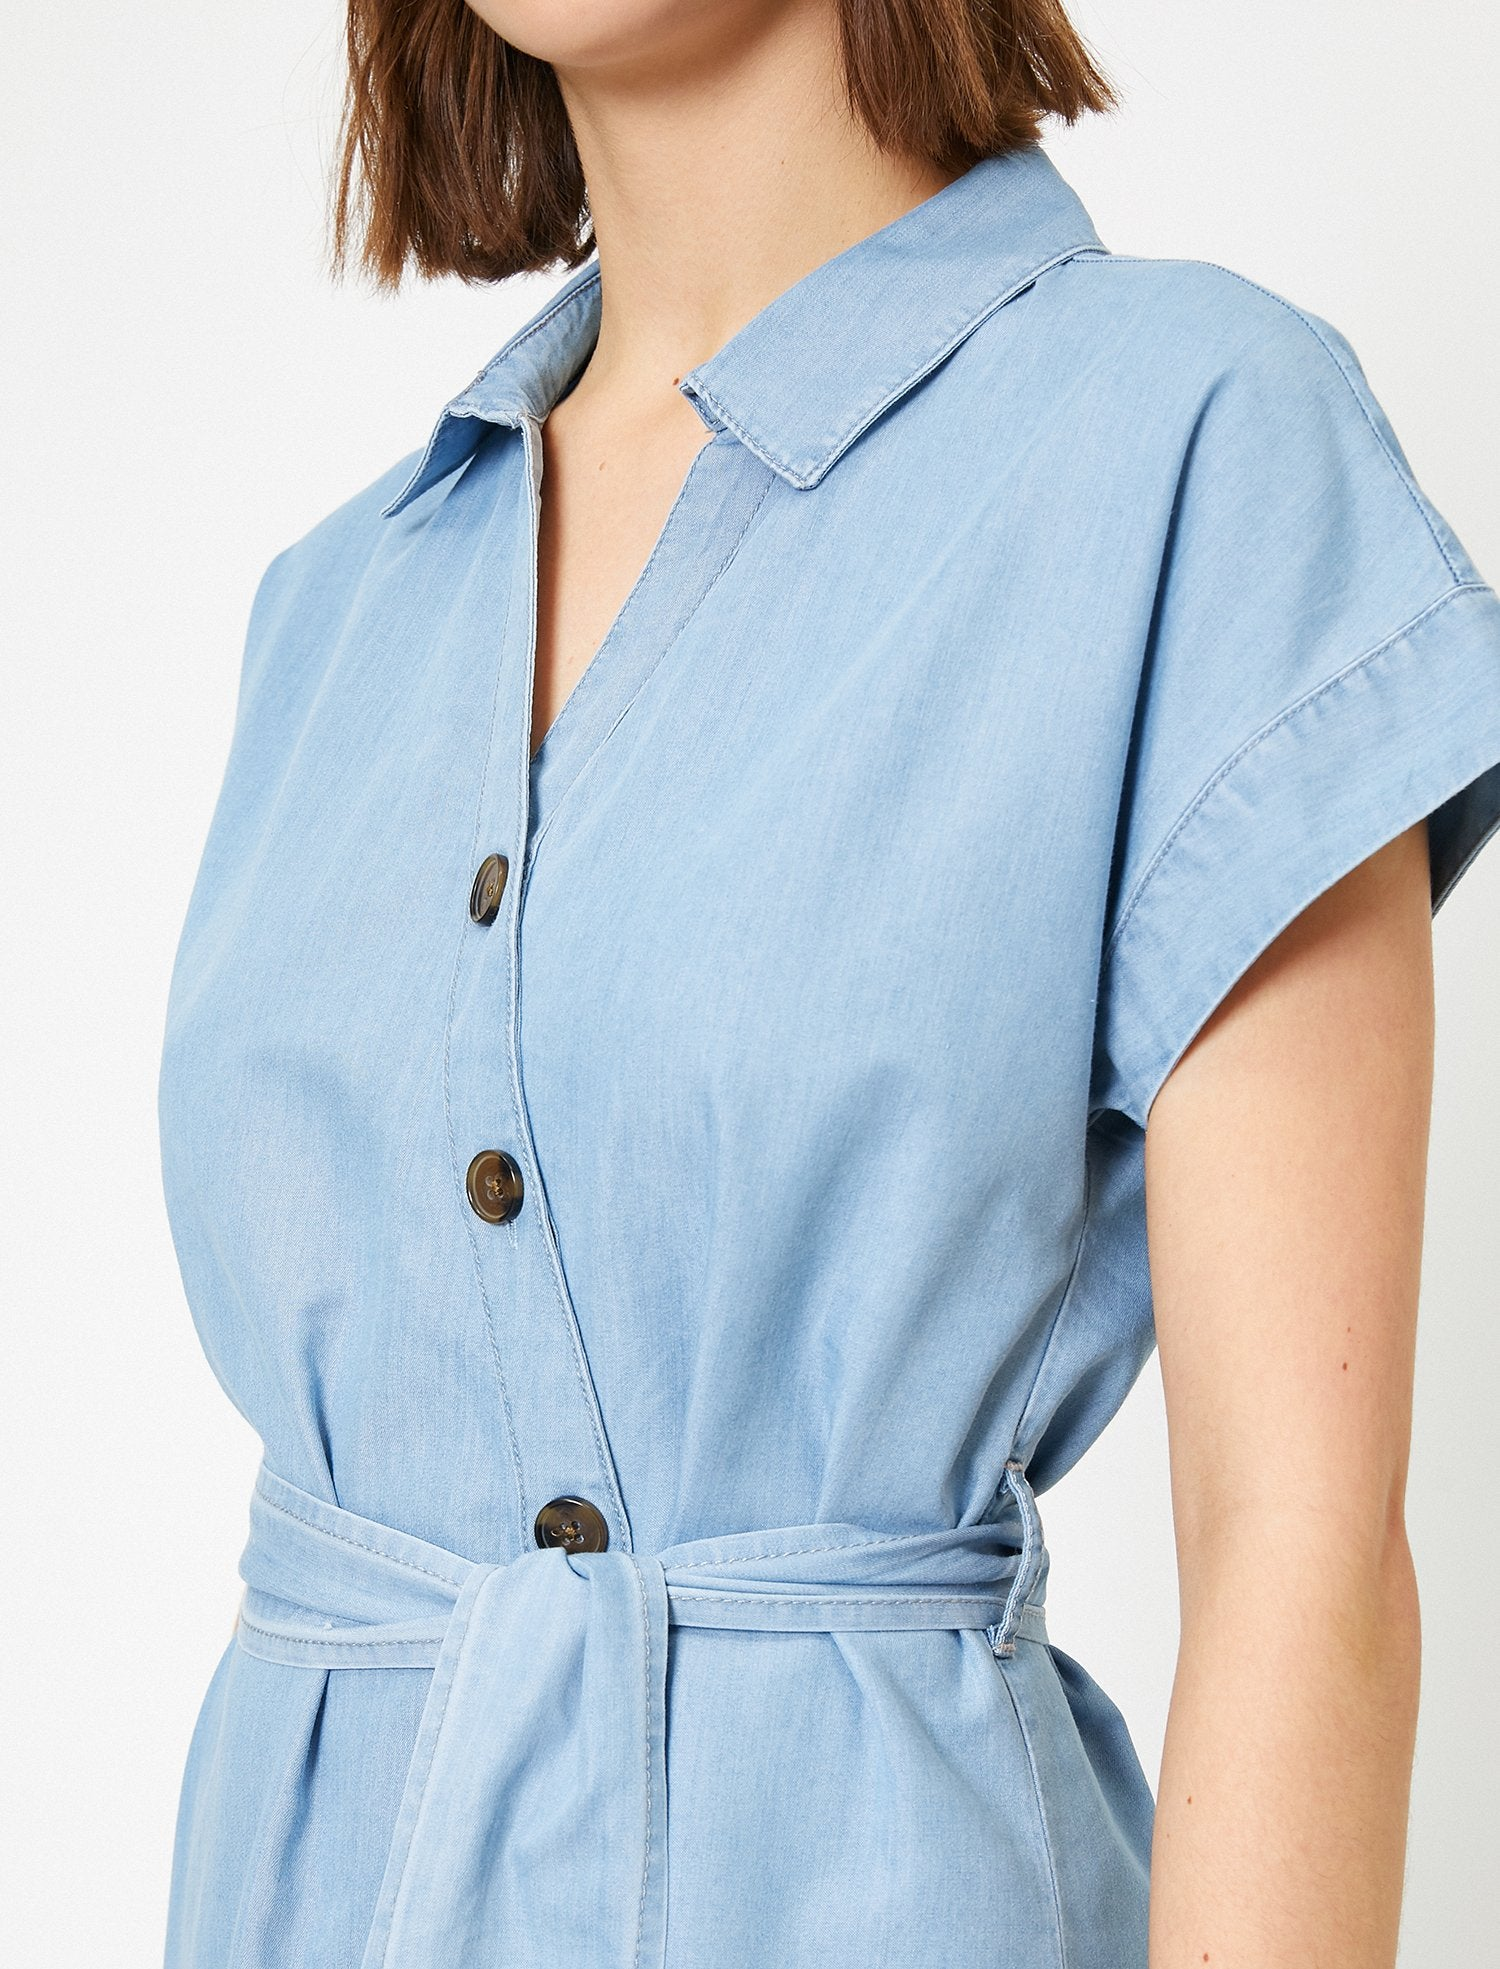 Tencel Wrap Dress in Light Indigo